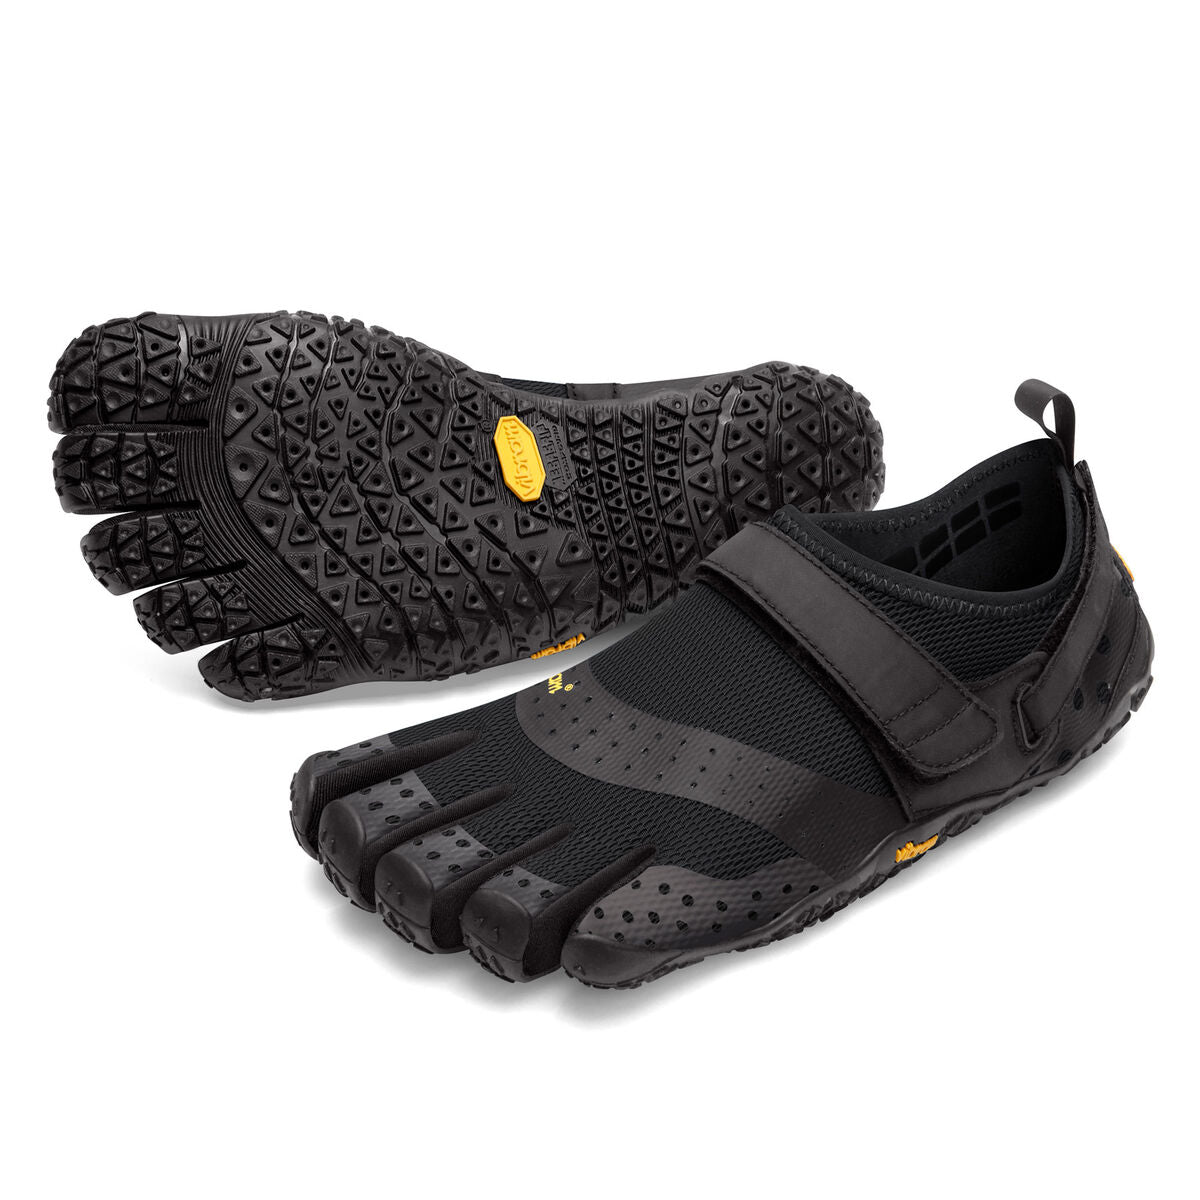 Men's Vibram Five Fingers V-Aqua Water Shoe in Black from the front